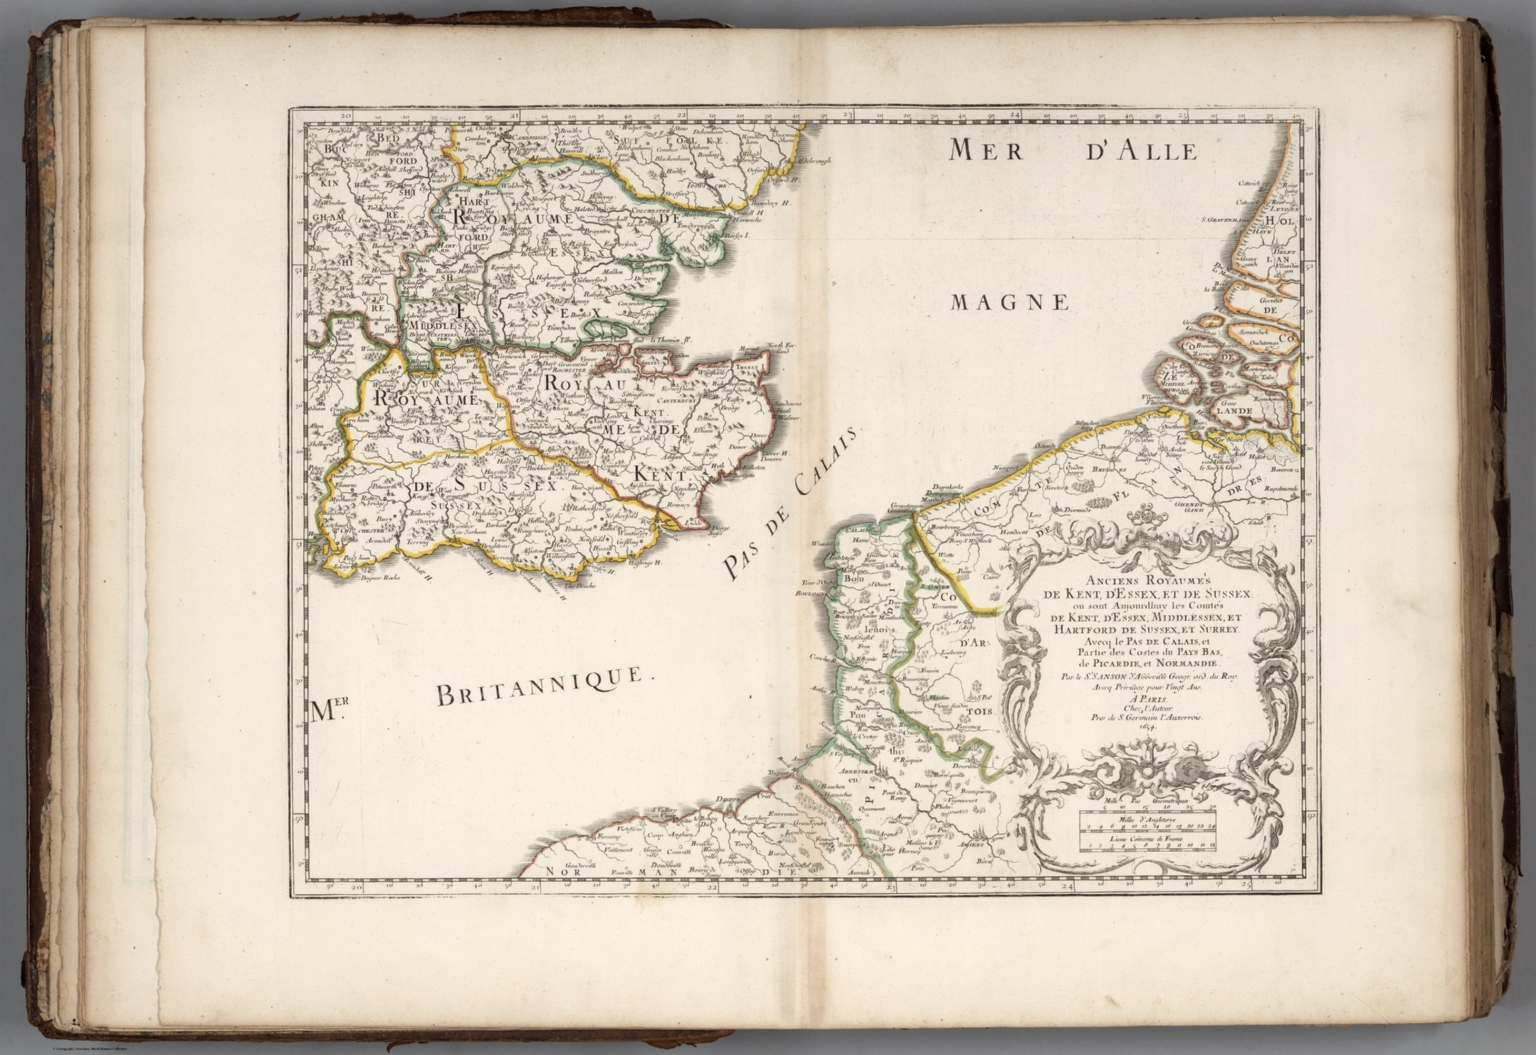 Ancient Kingdoms Of Kent Essex And Sussex England David Rumsey